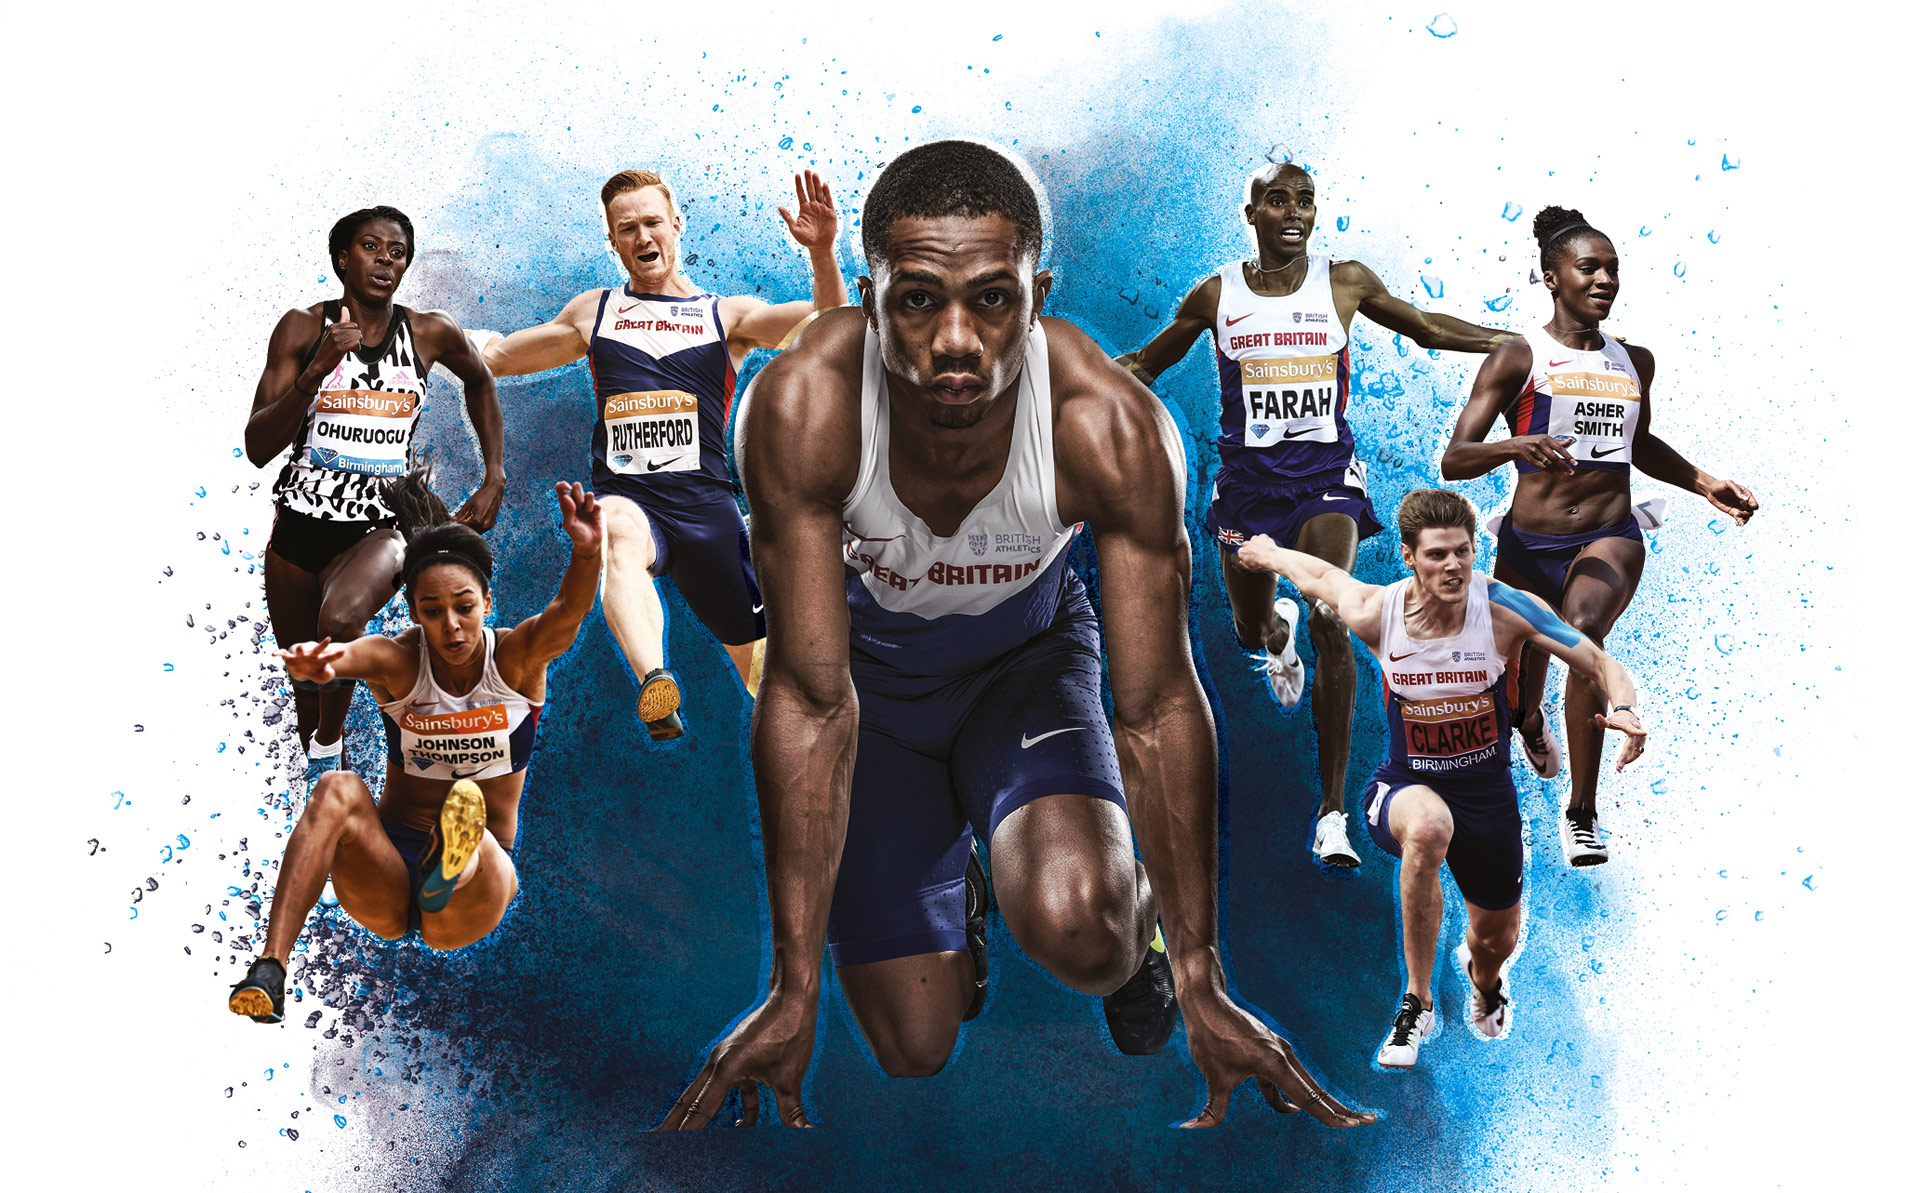 Birmingham Diamond League | Jask Creative